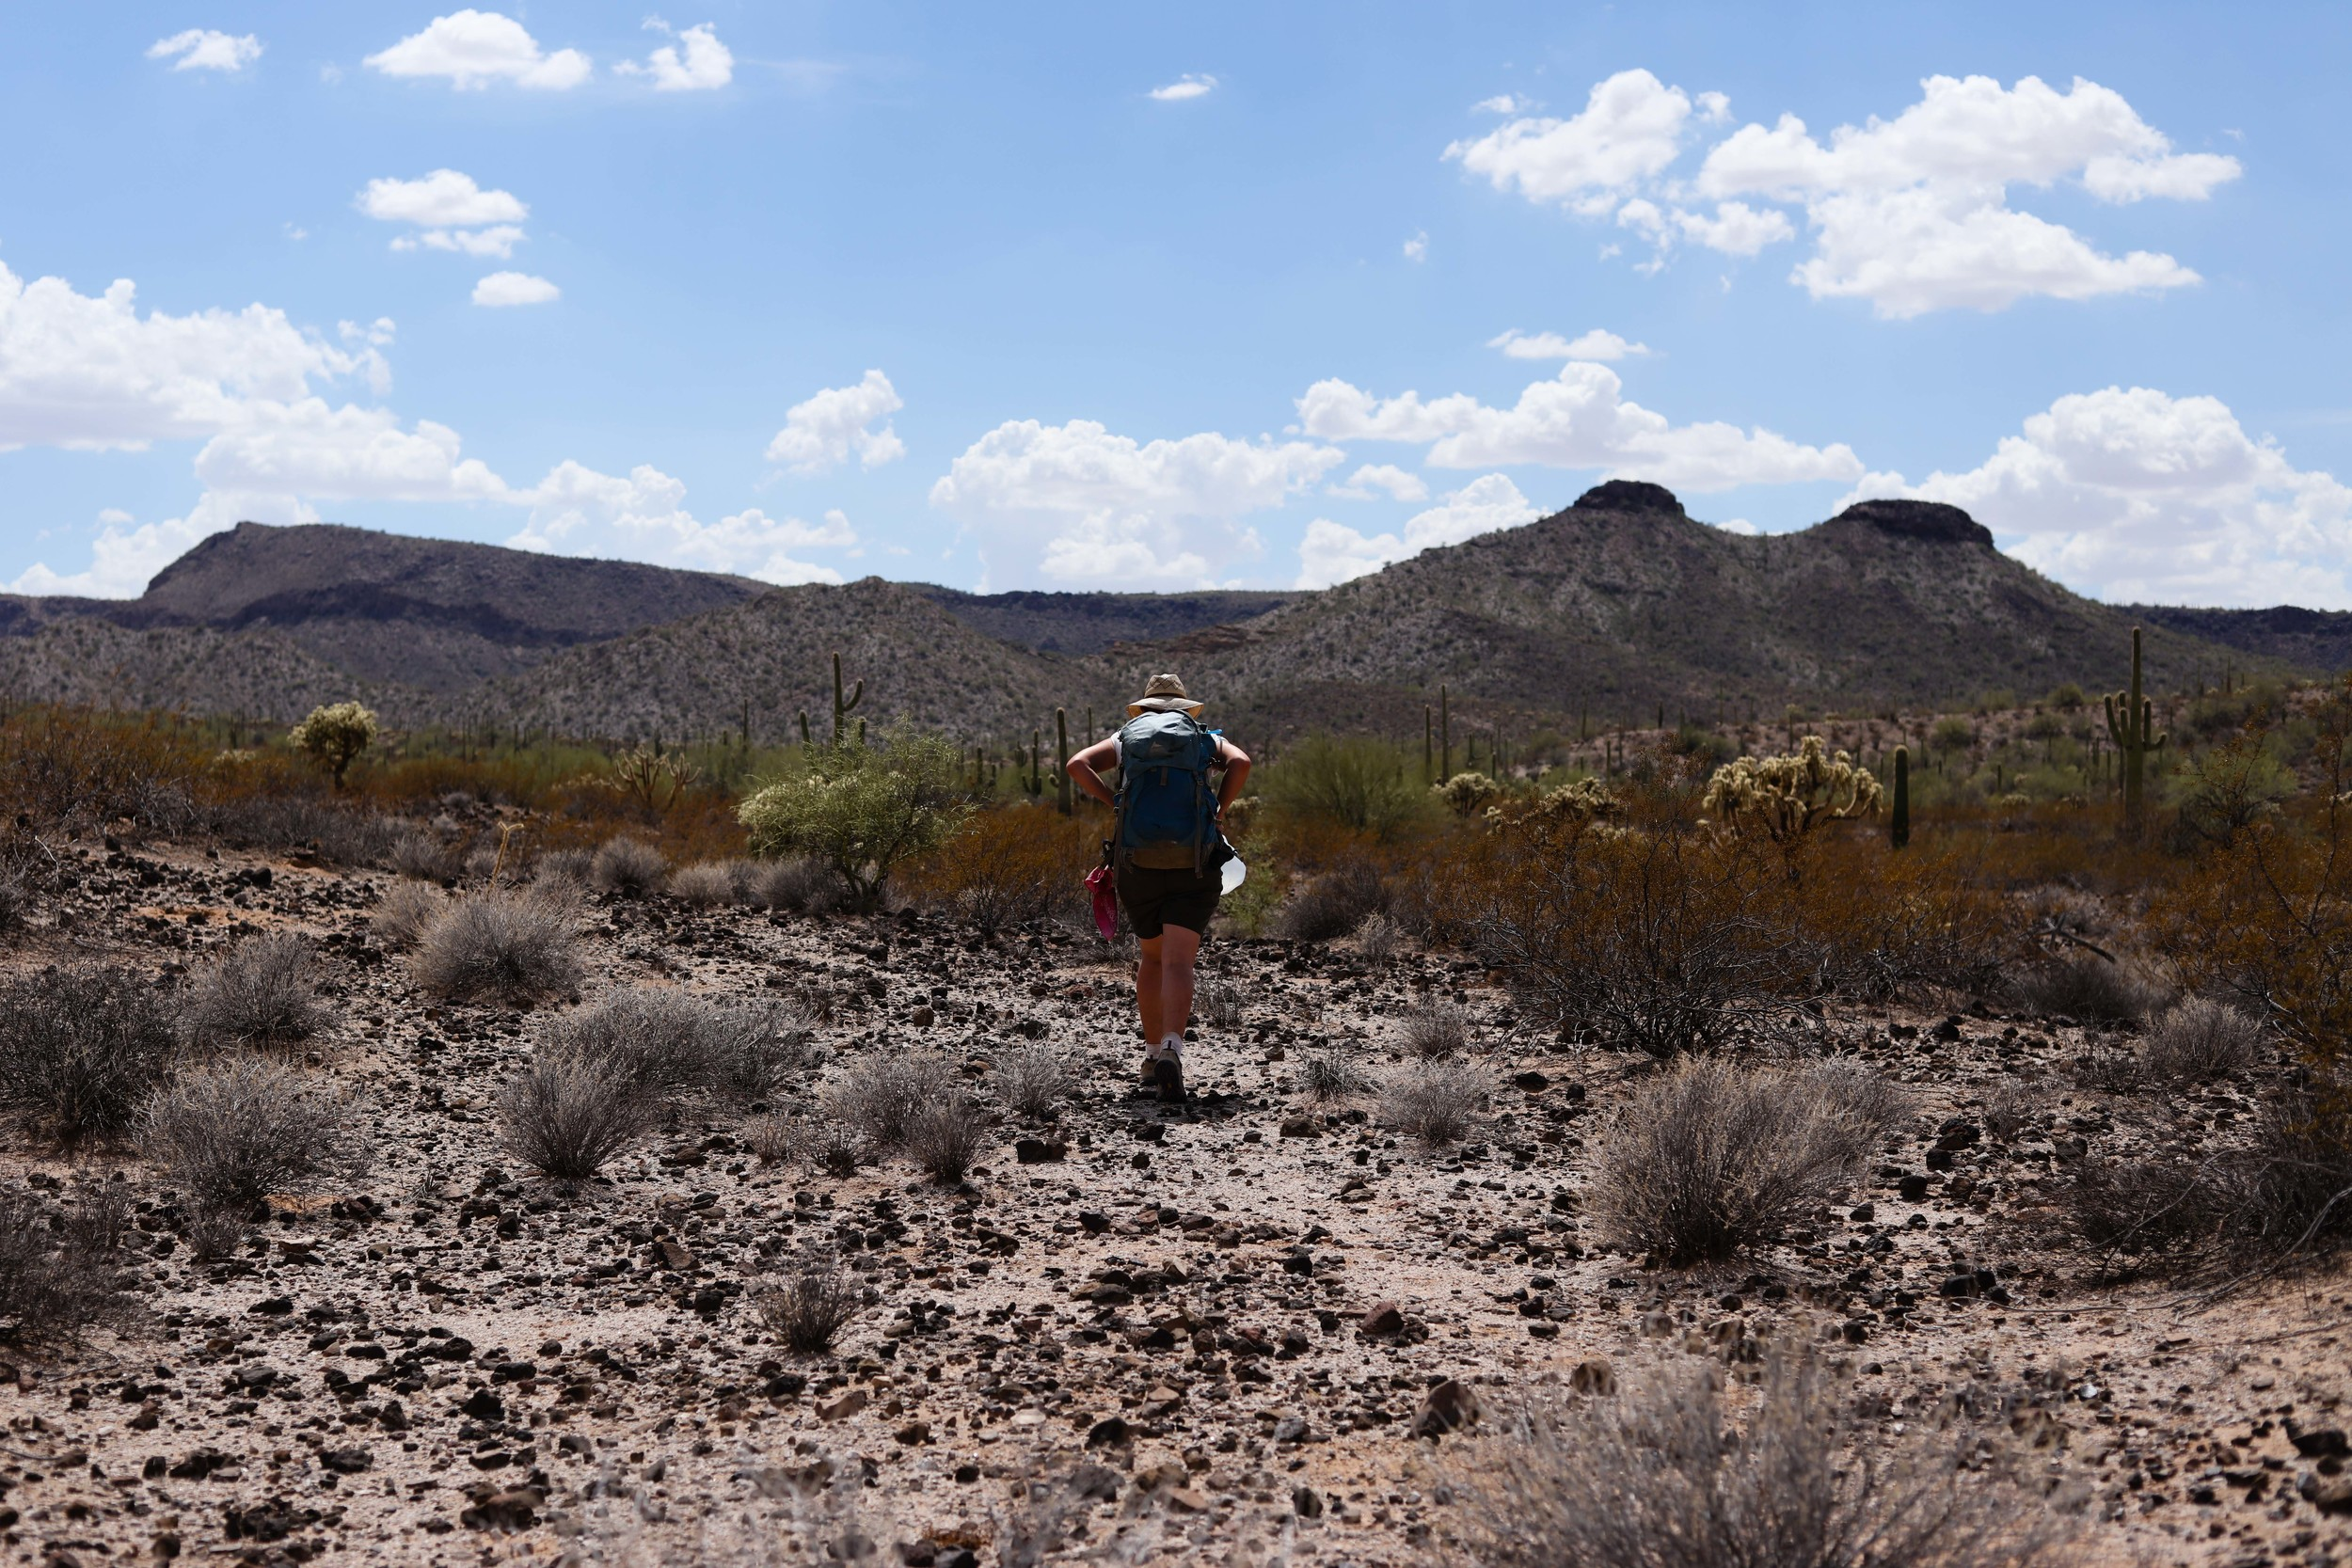 The terrain is desolate and otherworldly. The plants are sharp and jagged, there are rocks everywhere, and one must always watch out for rattle snakes, gila monsters, and other dangerous animal life.